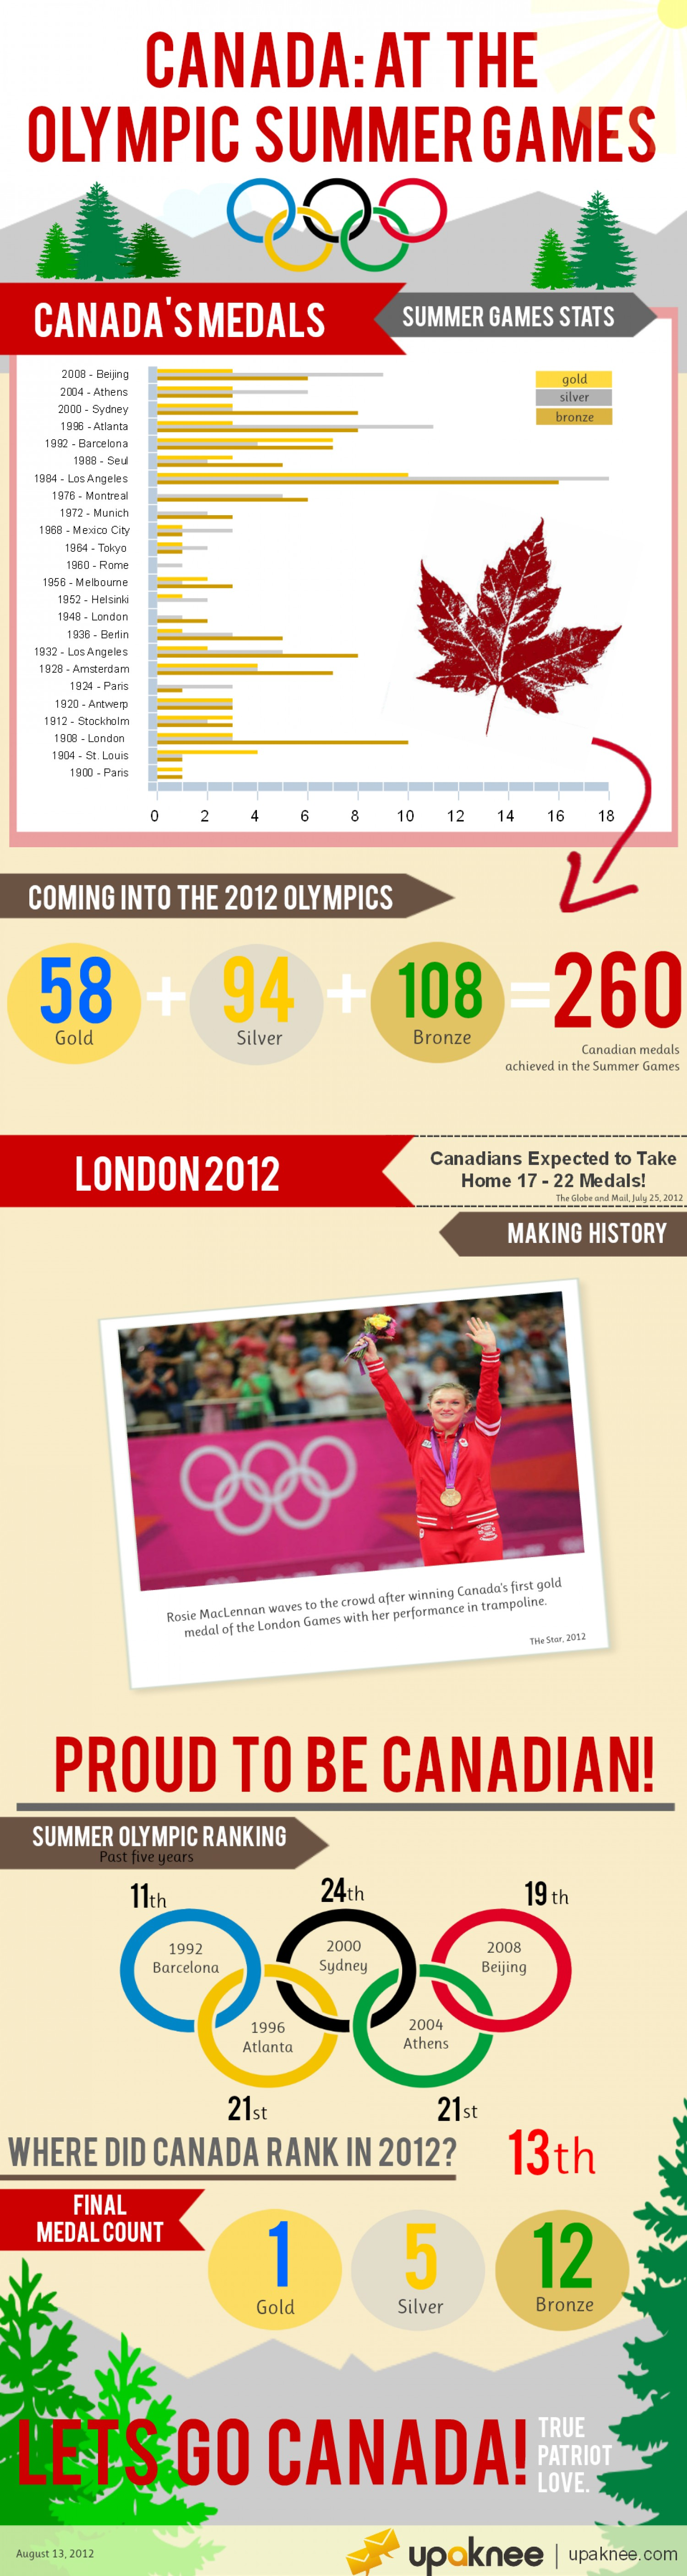 17. Canada's Standing at the London 2012 Olympics